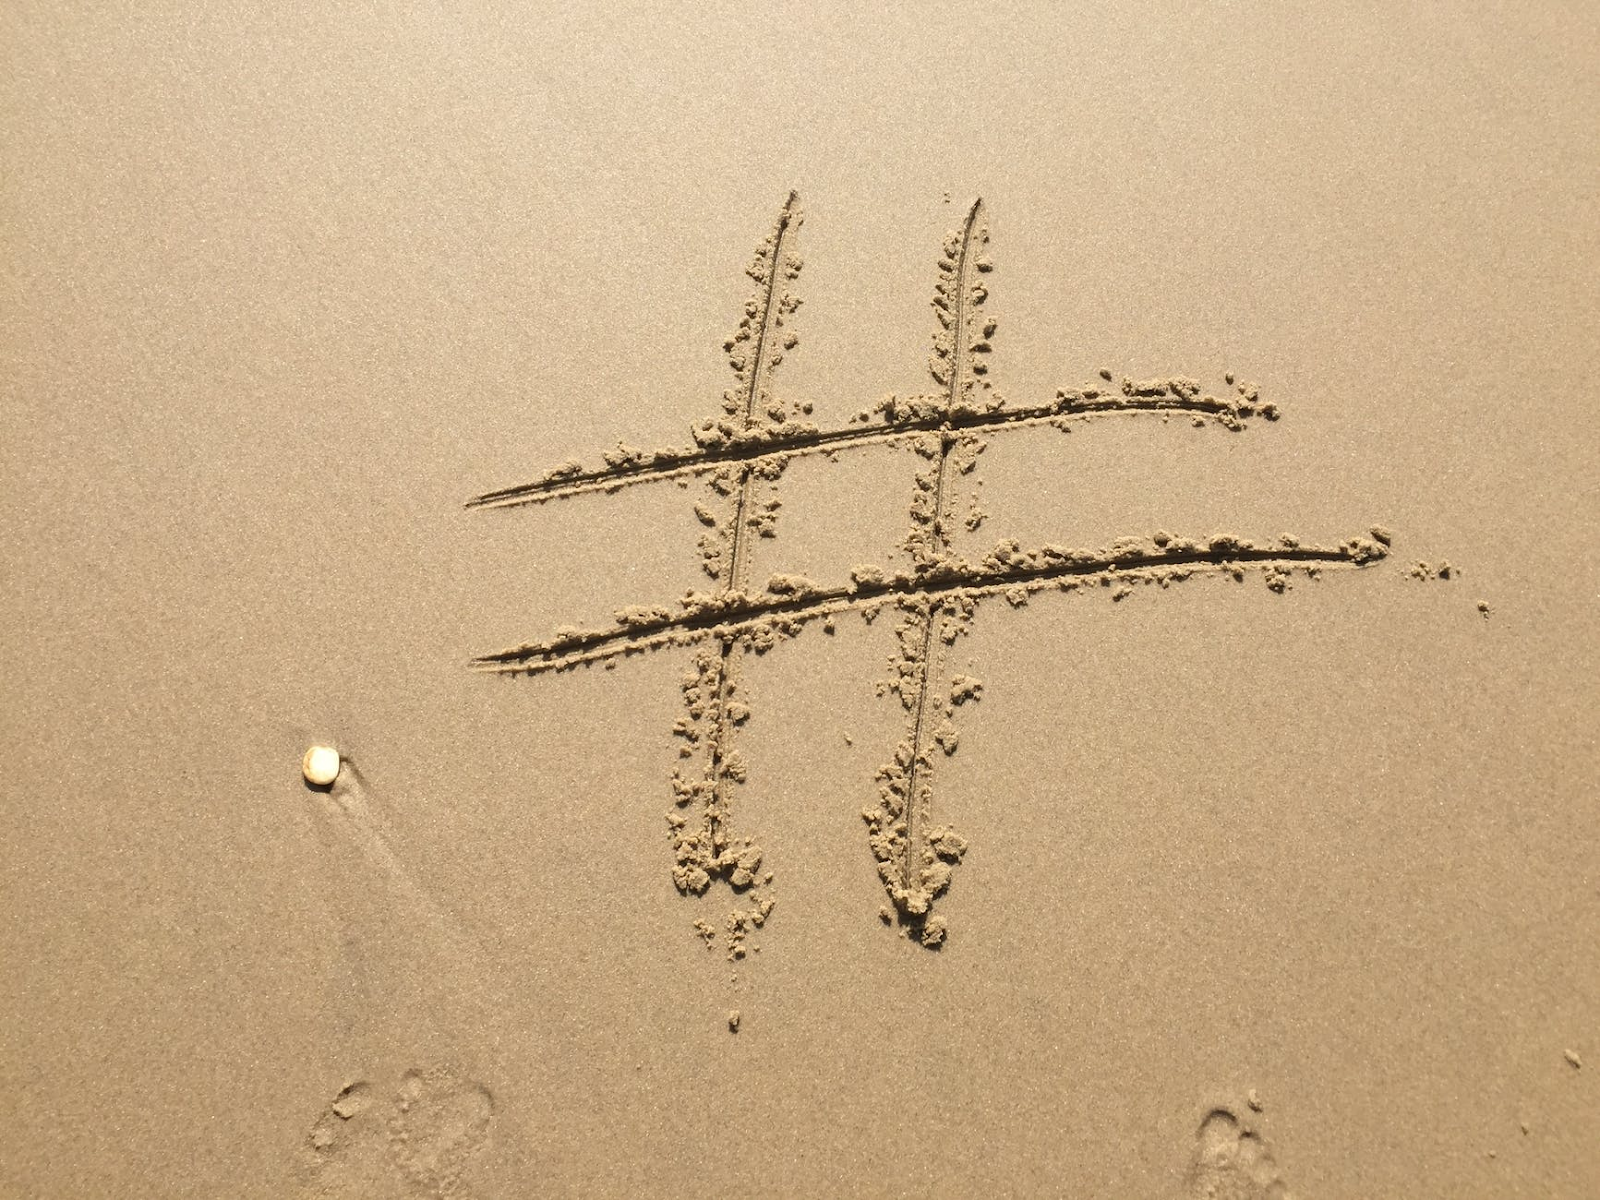 image showing hashtag written in the sand